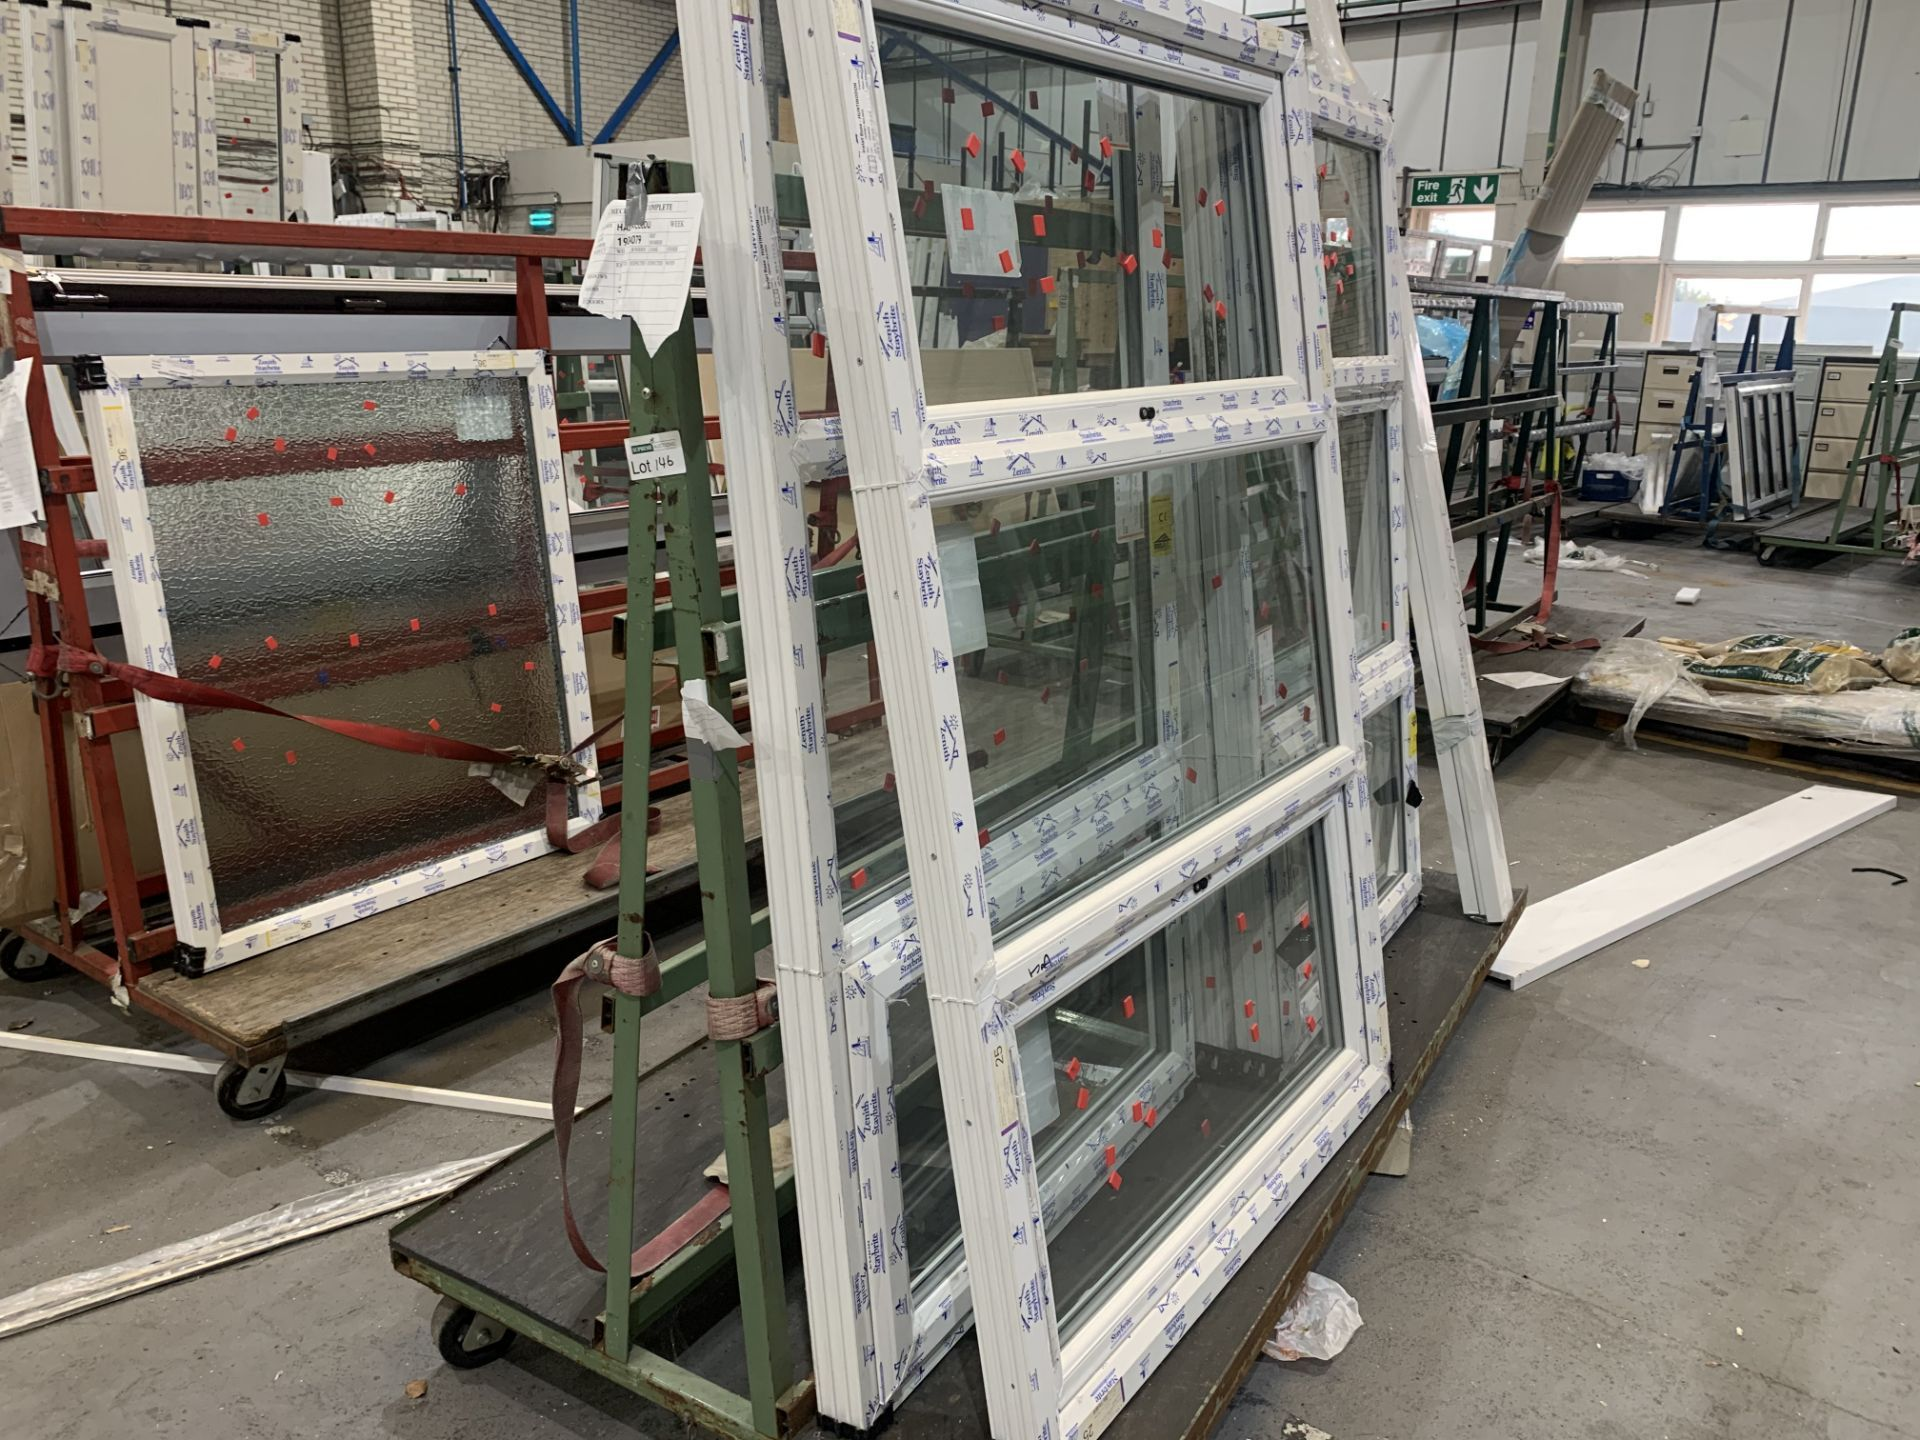 DOUBLE SIDED ACRA A FRAME WINDOW TROLLEY WITH WHEELS 245L X 170H X 120 WITH CONTENTS INCLUDING 4 - Image 2 of 2